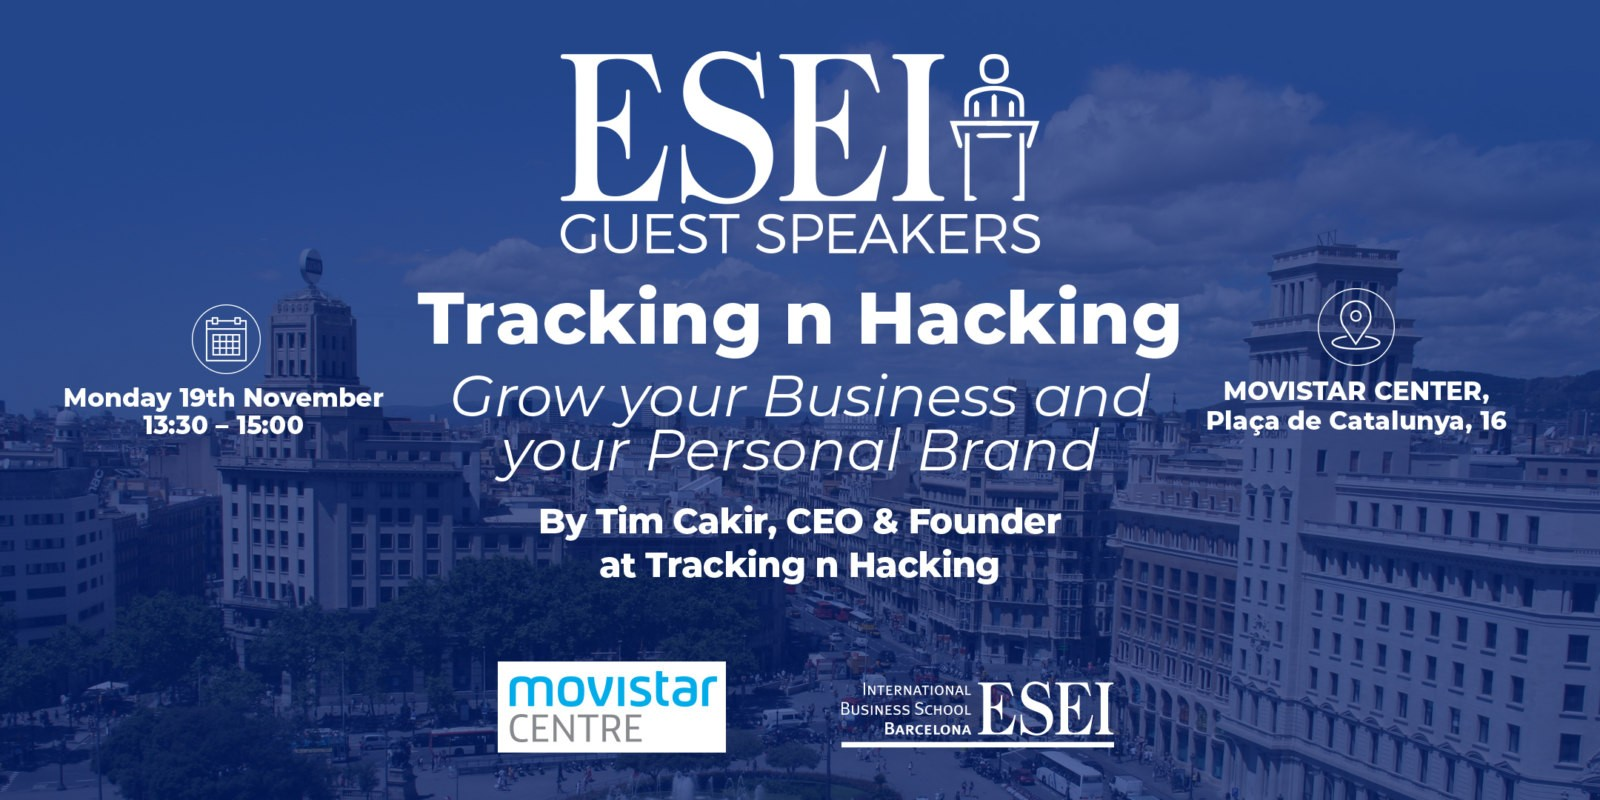 Guest Speaker Session: Tim Cakir talks growth, tracking and hacking 7